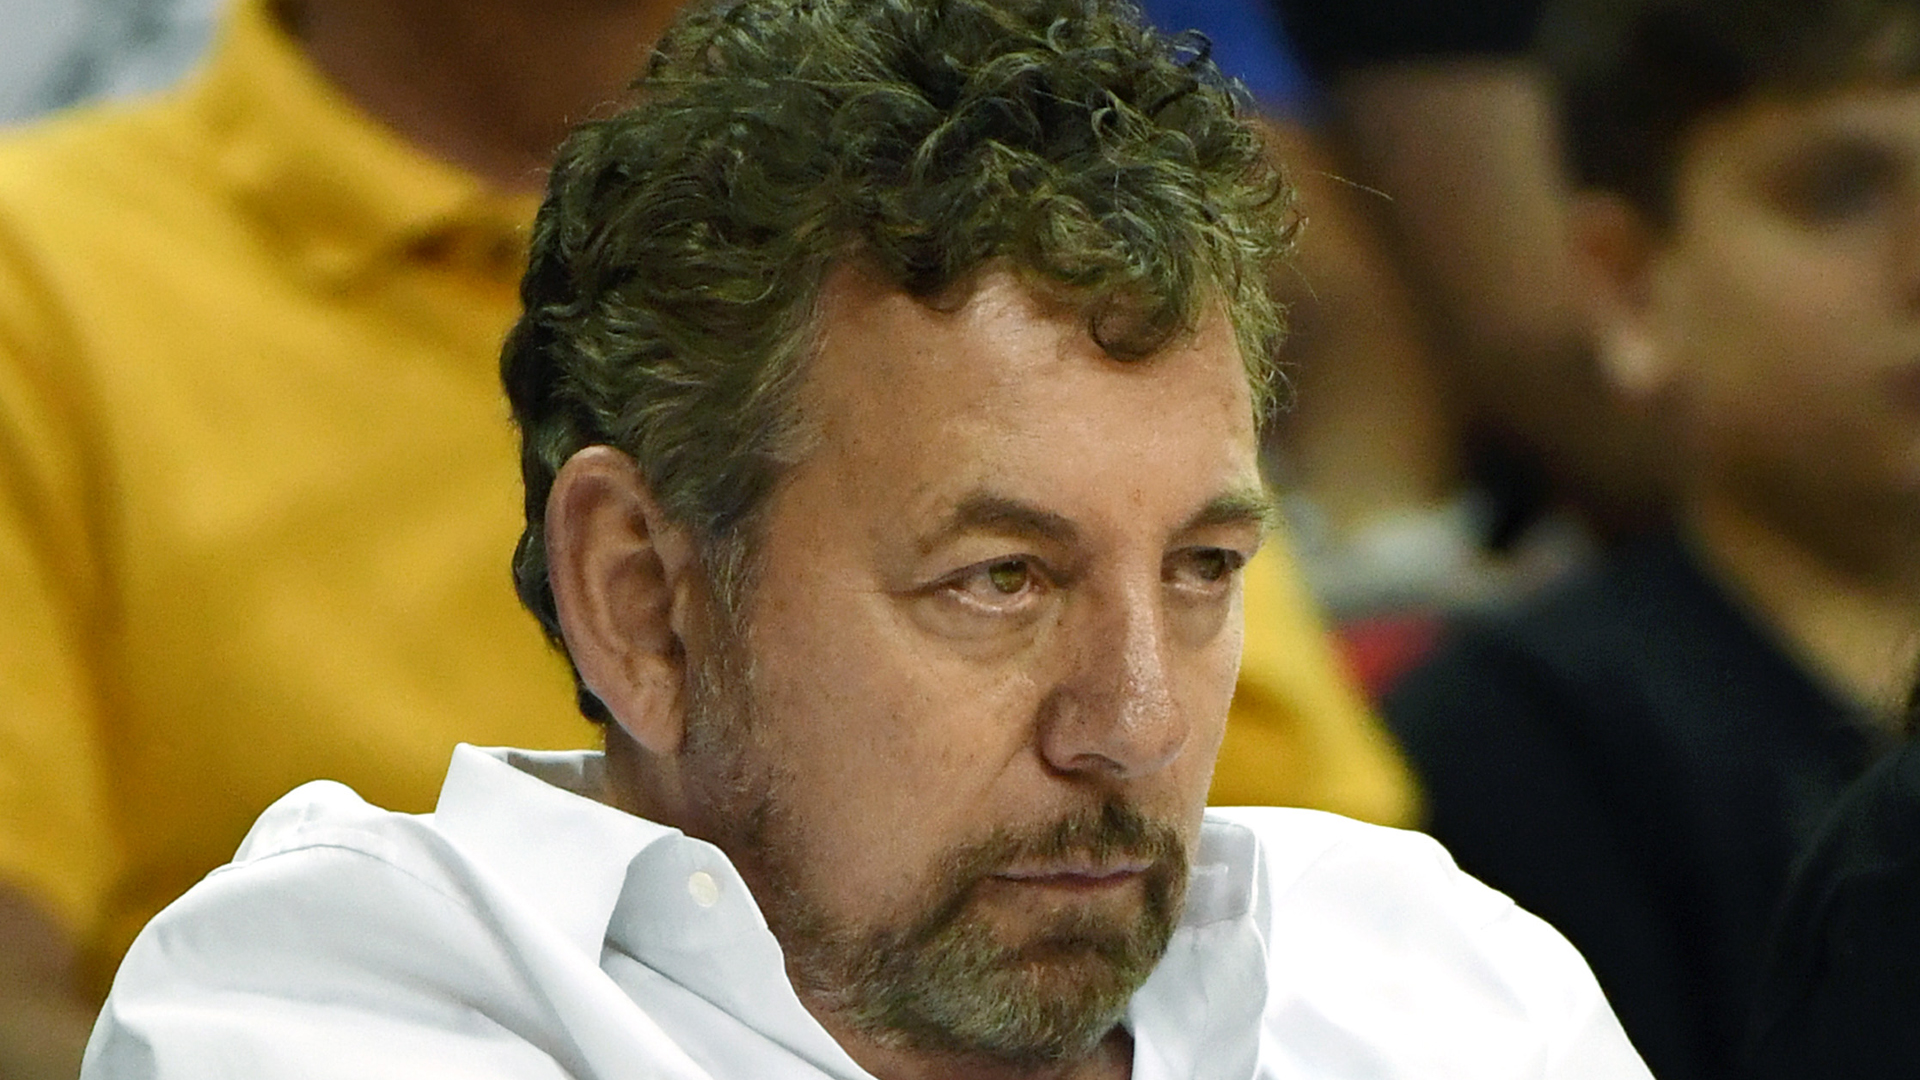 James Dolan, the owner of the New York Knicks, has contracted coronavirus.